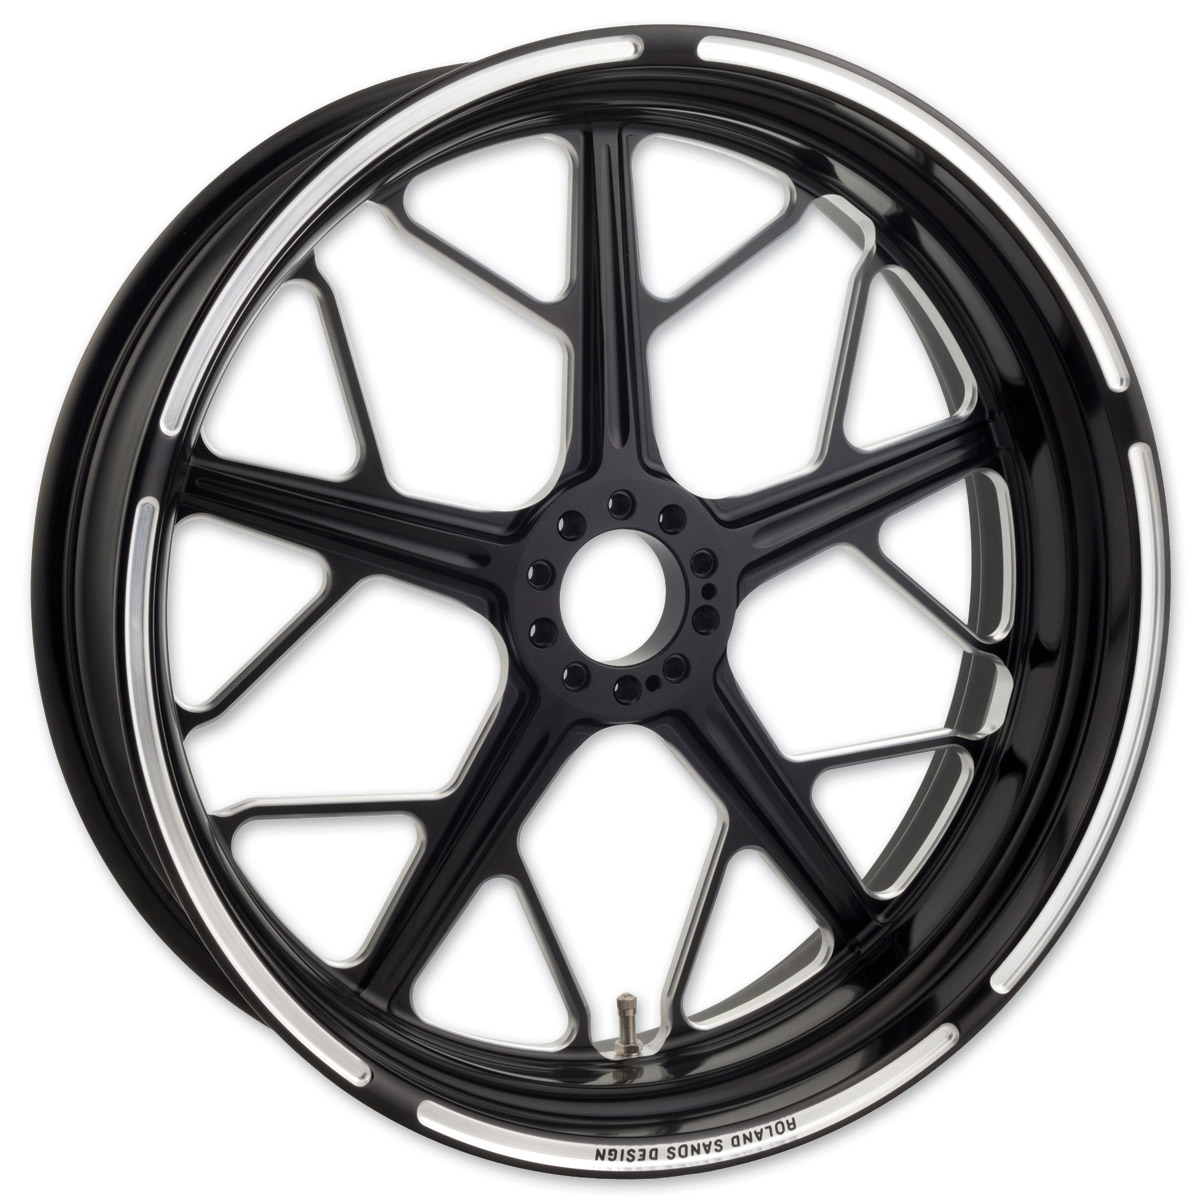 Roland Sands Design Hutch Contrast Cut ABS Front Wheel, 21″ x 3.5″